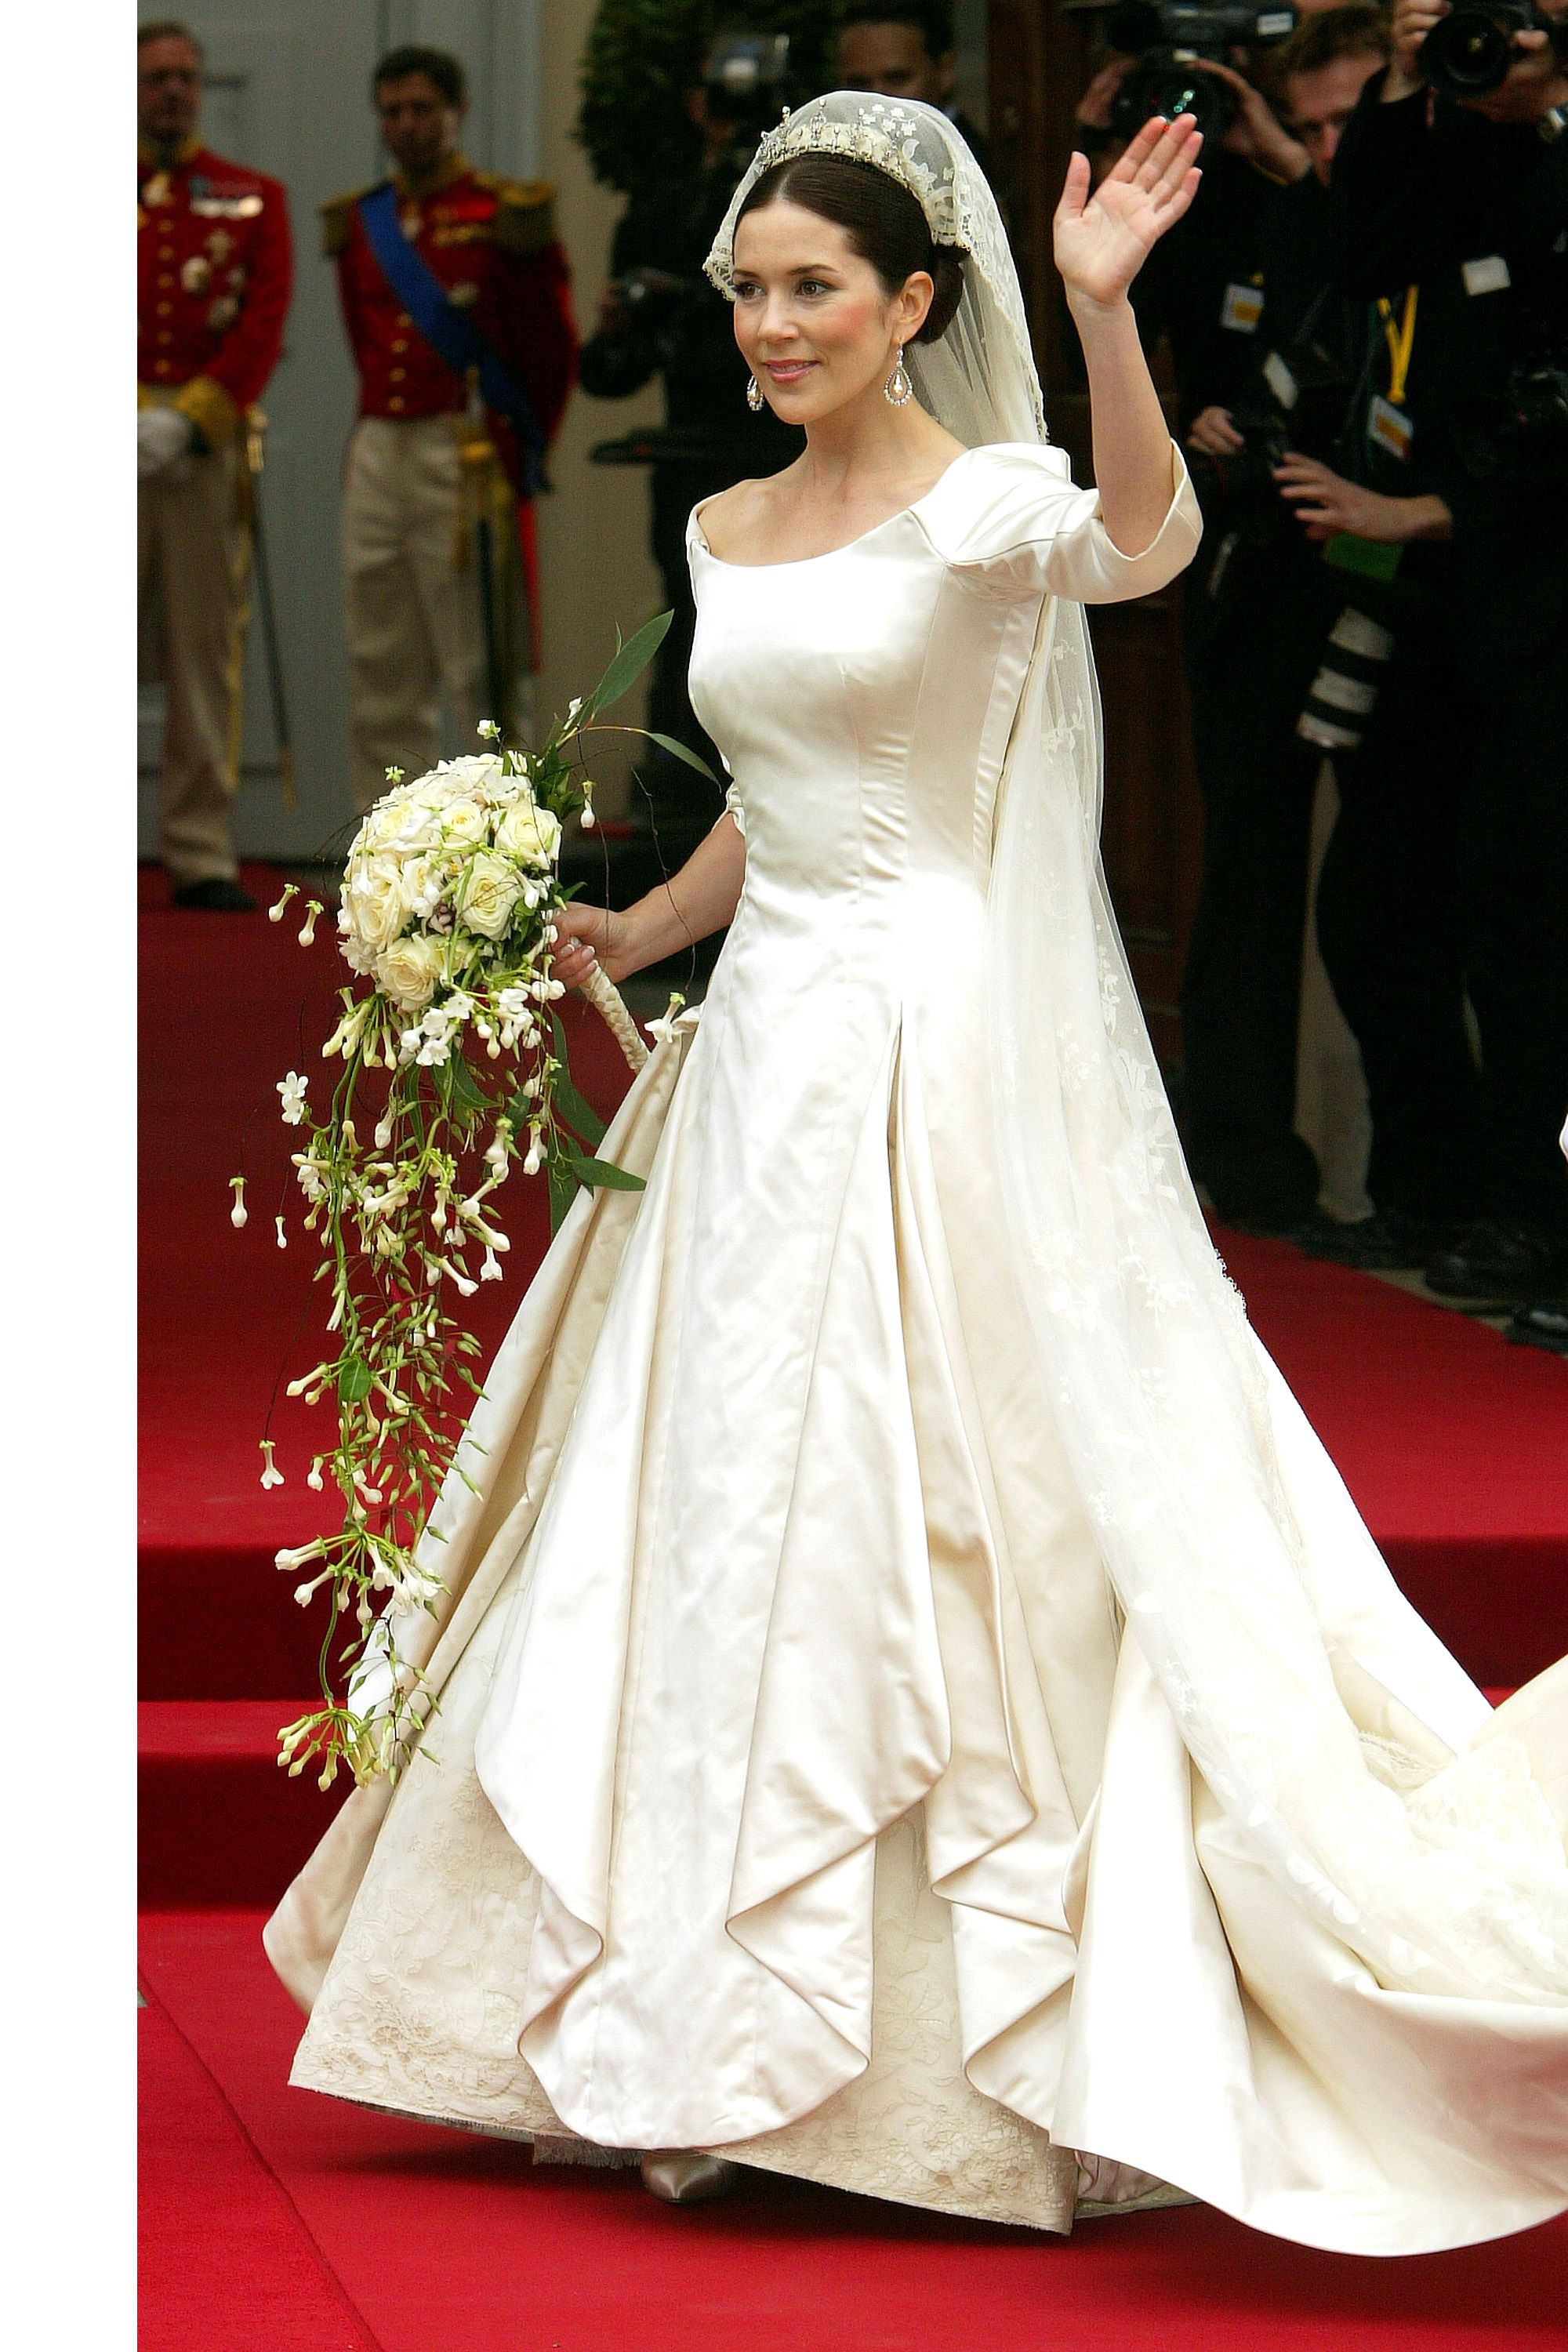 The Most Iconic Royal Wedding Gowns of All Time Royal